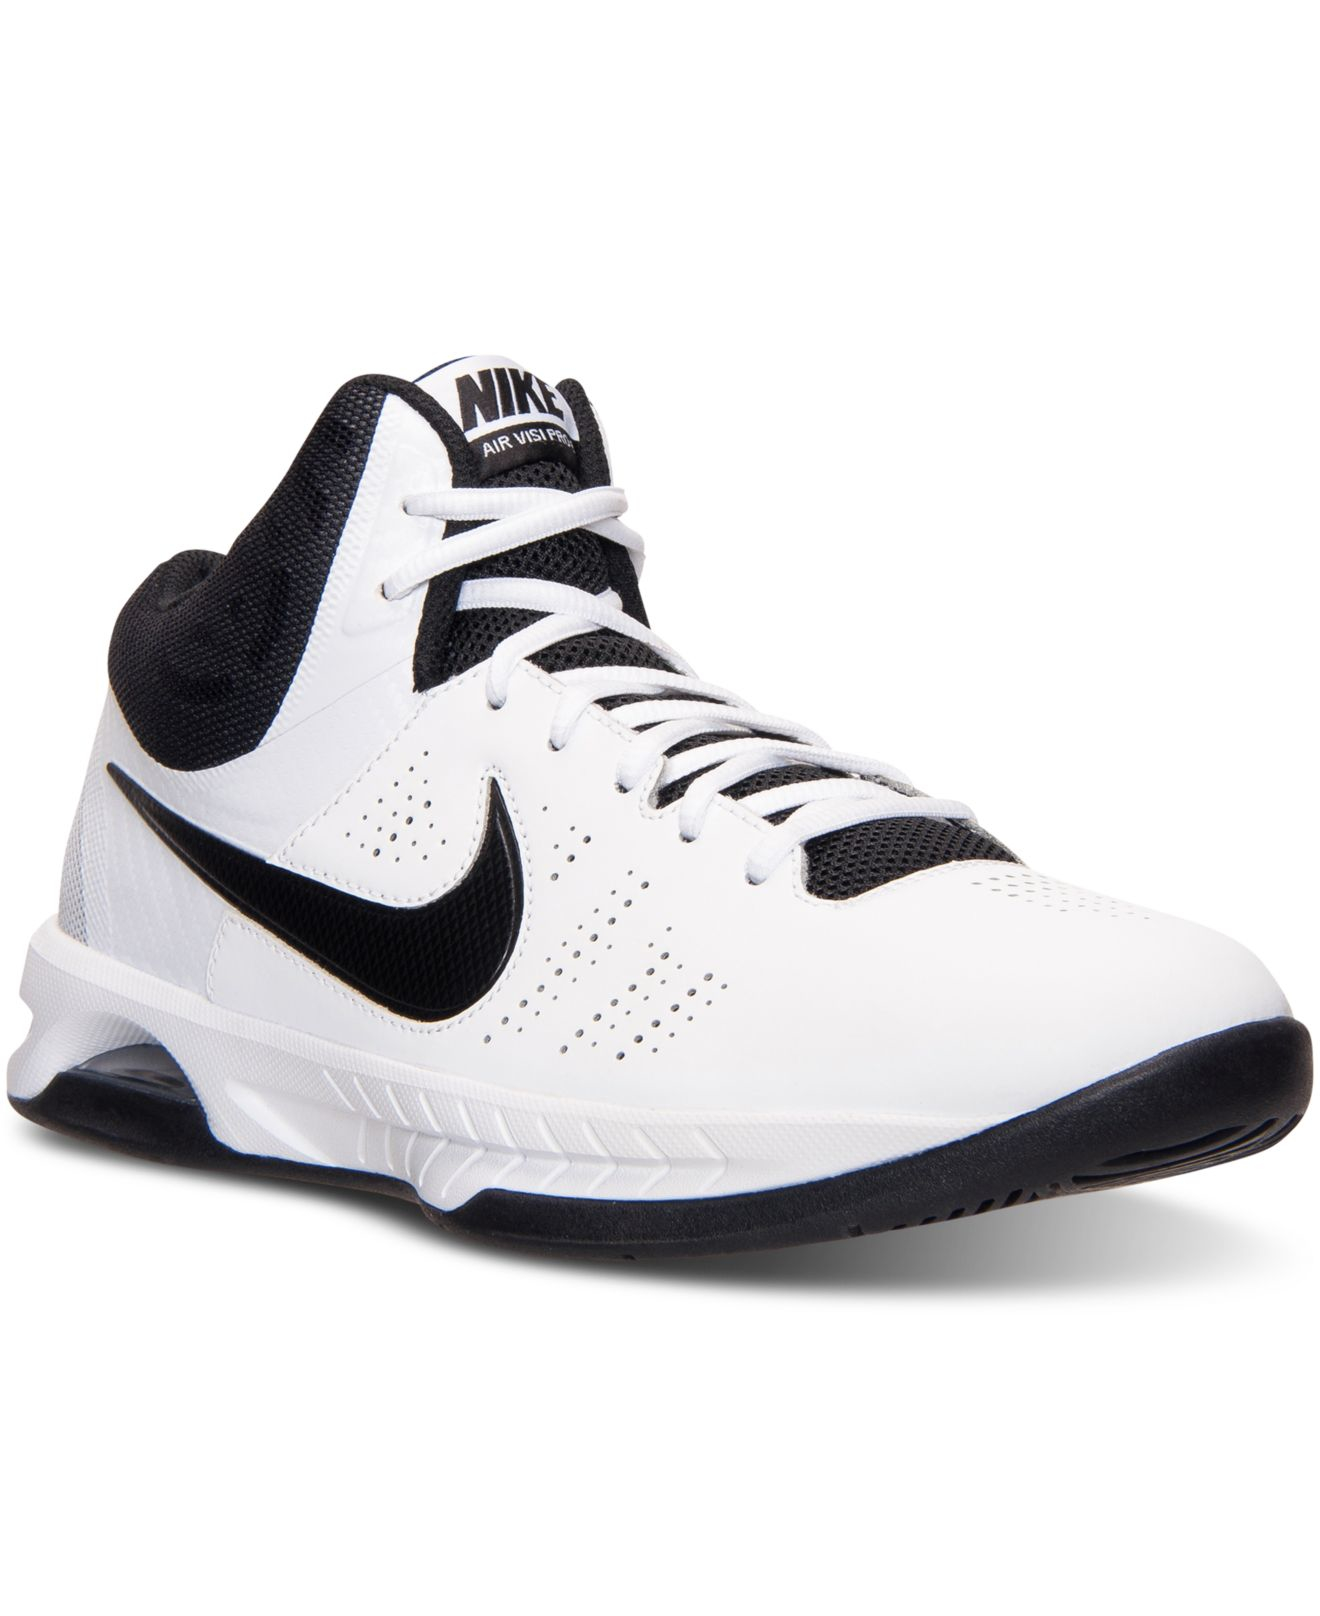 41d874322c67 ... shoes Nike Mens Air Visi Pro Vi Basketball Sneakers From Finish Li ...